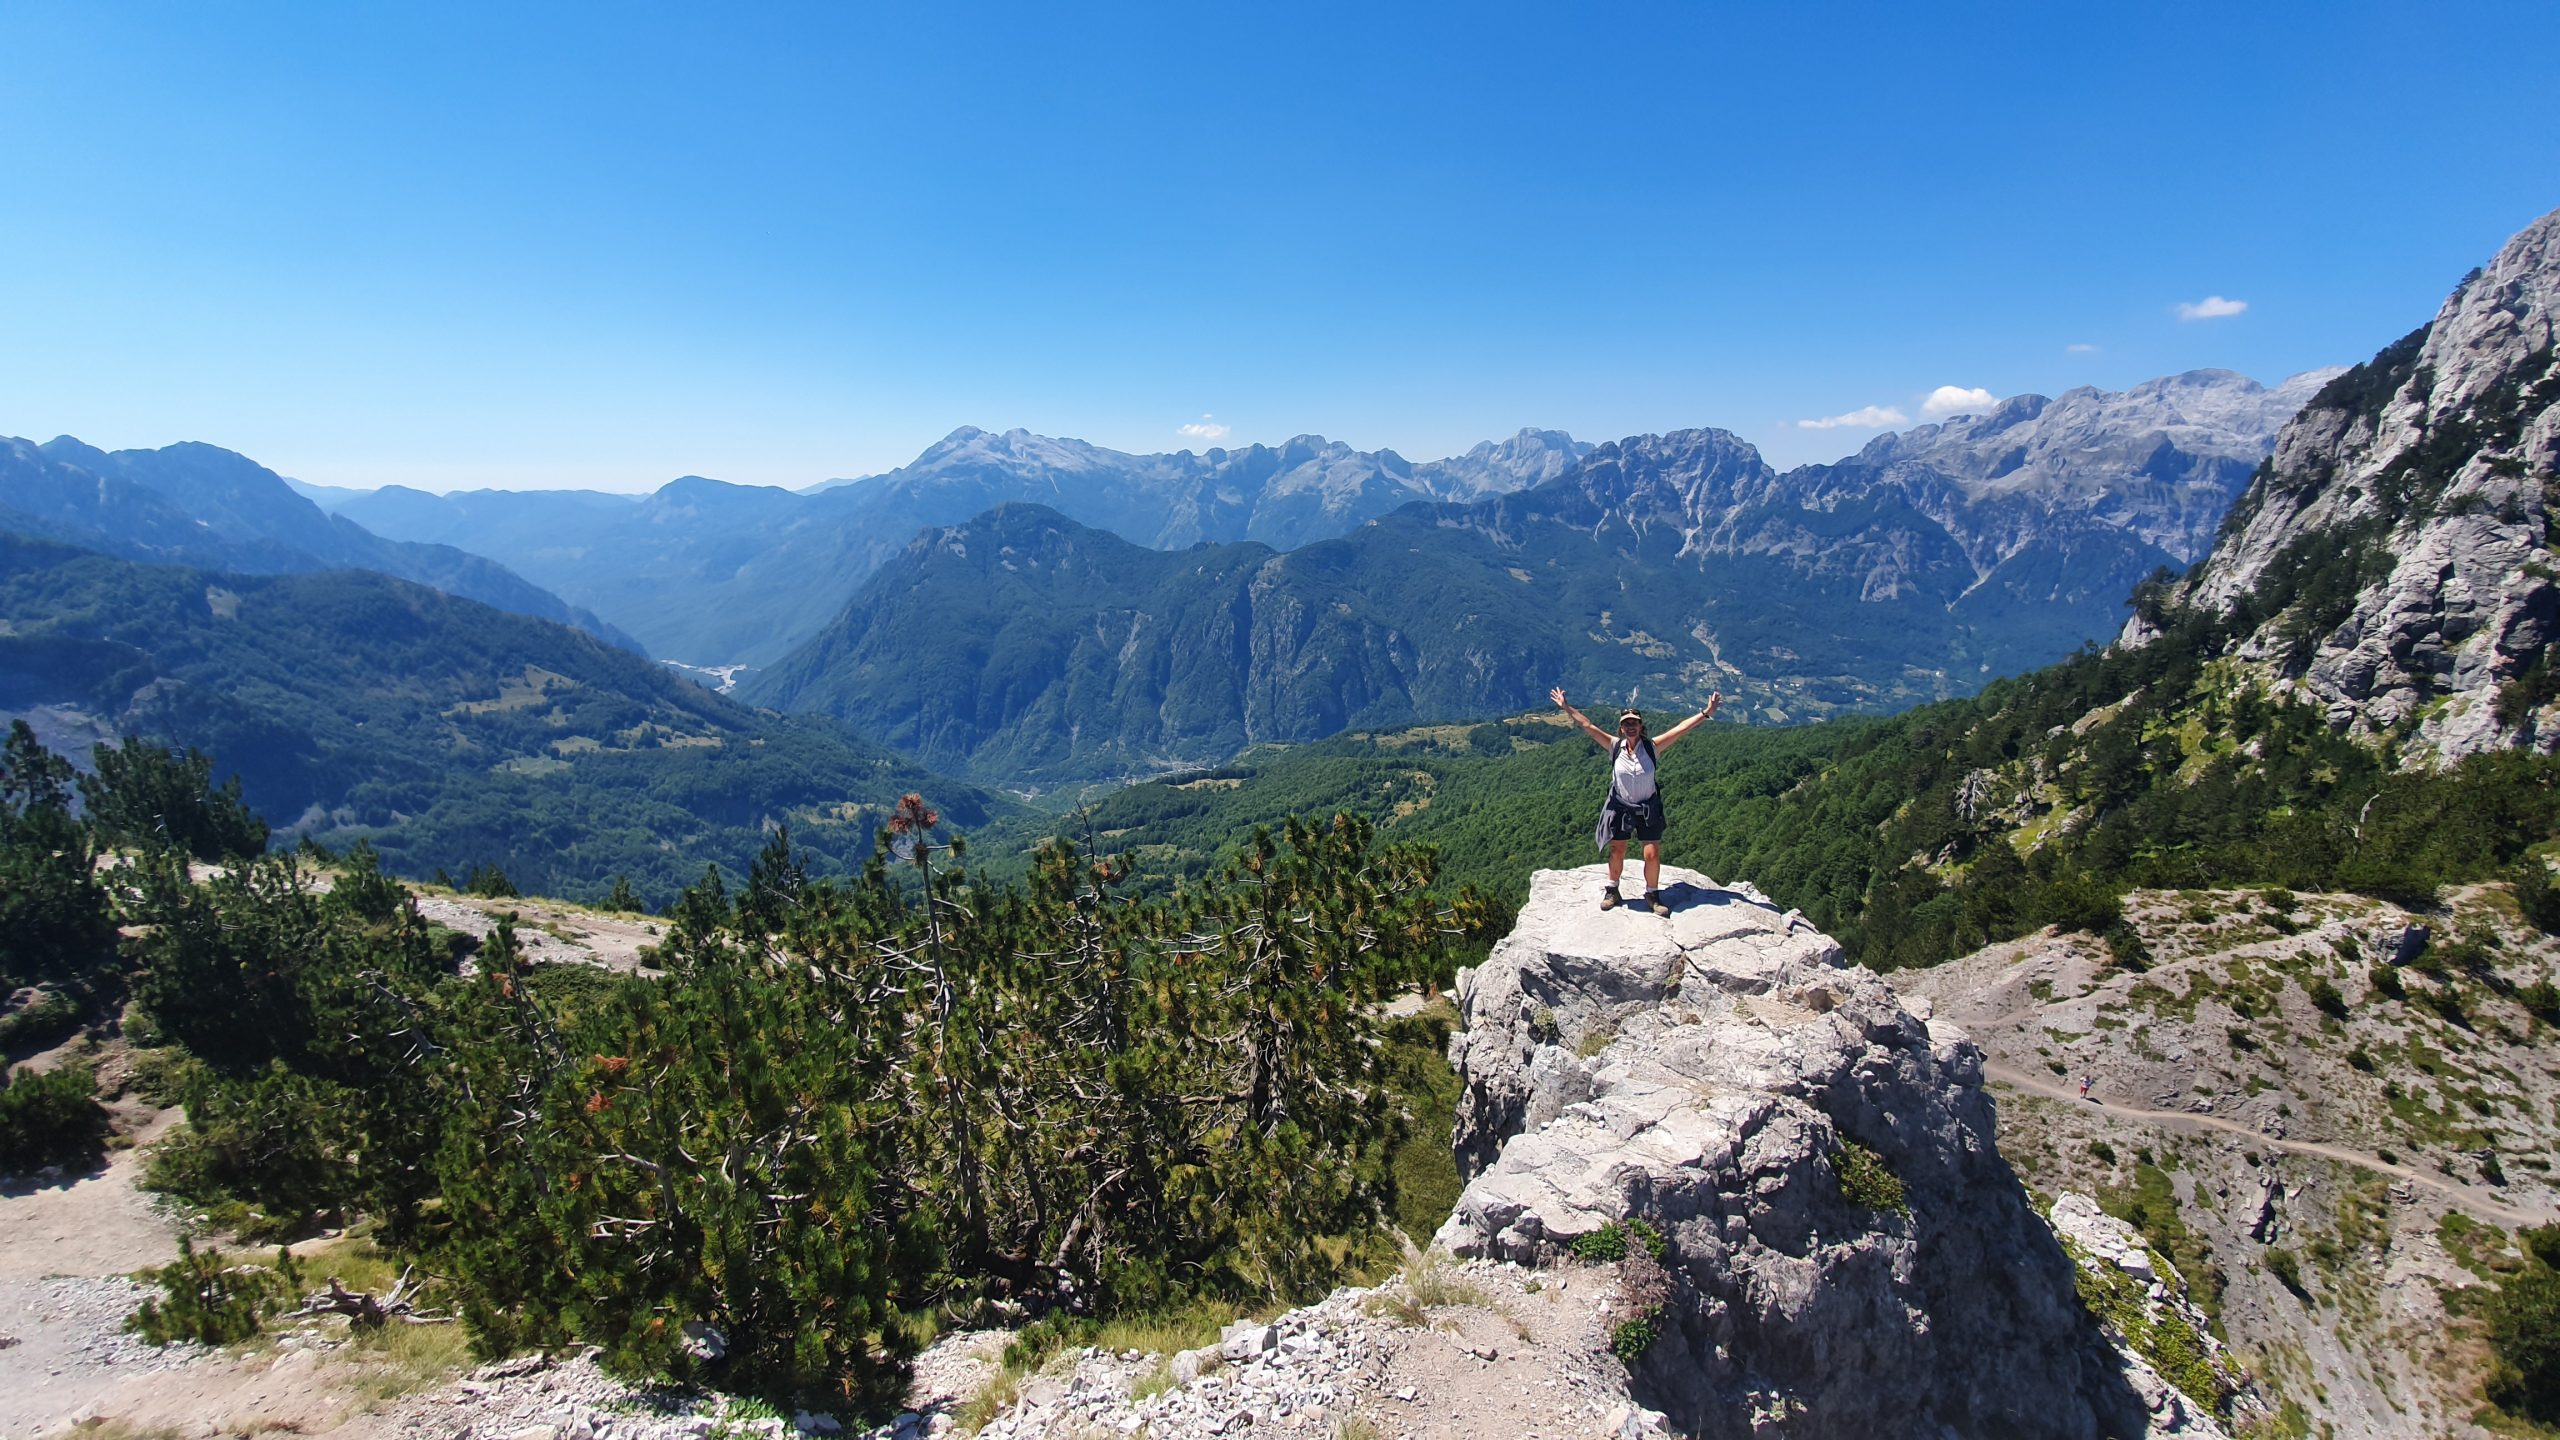 female hiker standing on a rocky outcrop overlooking the entire mountain range and valley, on the Valbona-Theth hiking trails